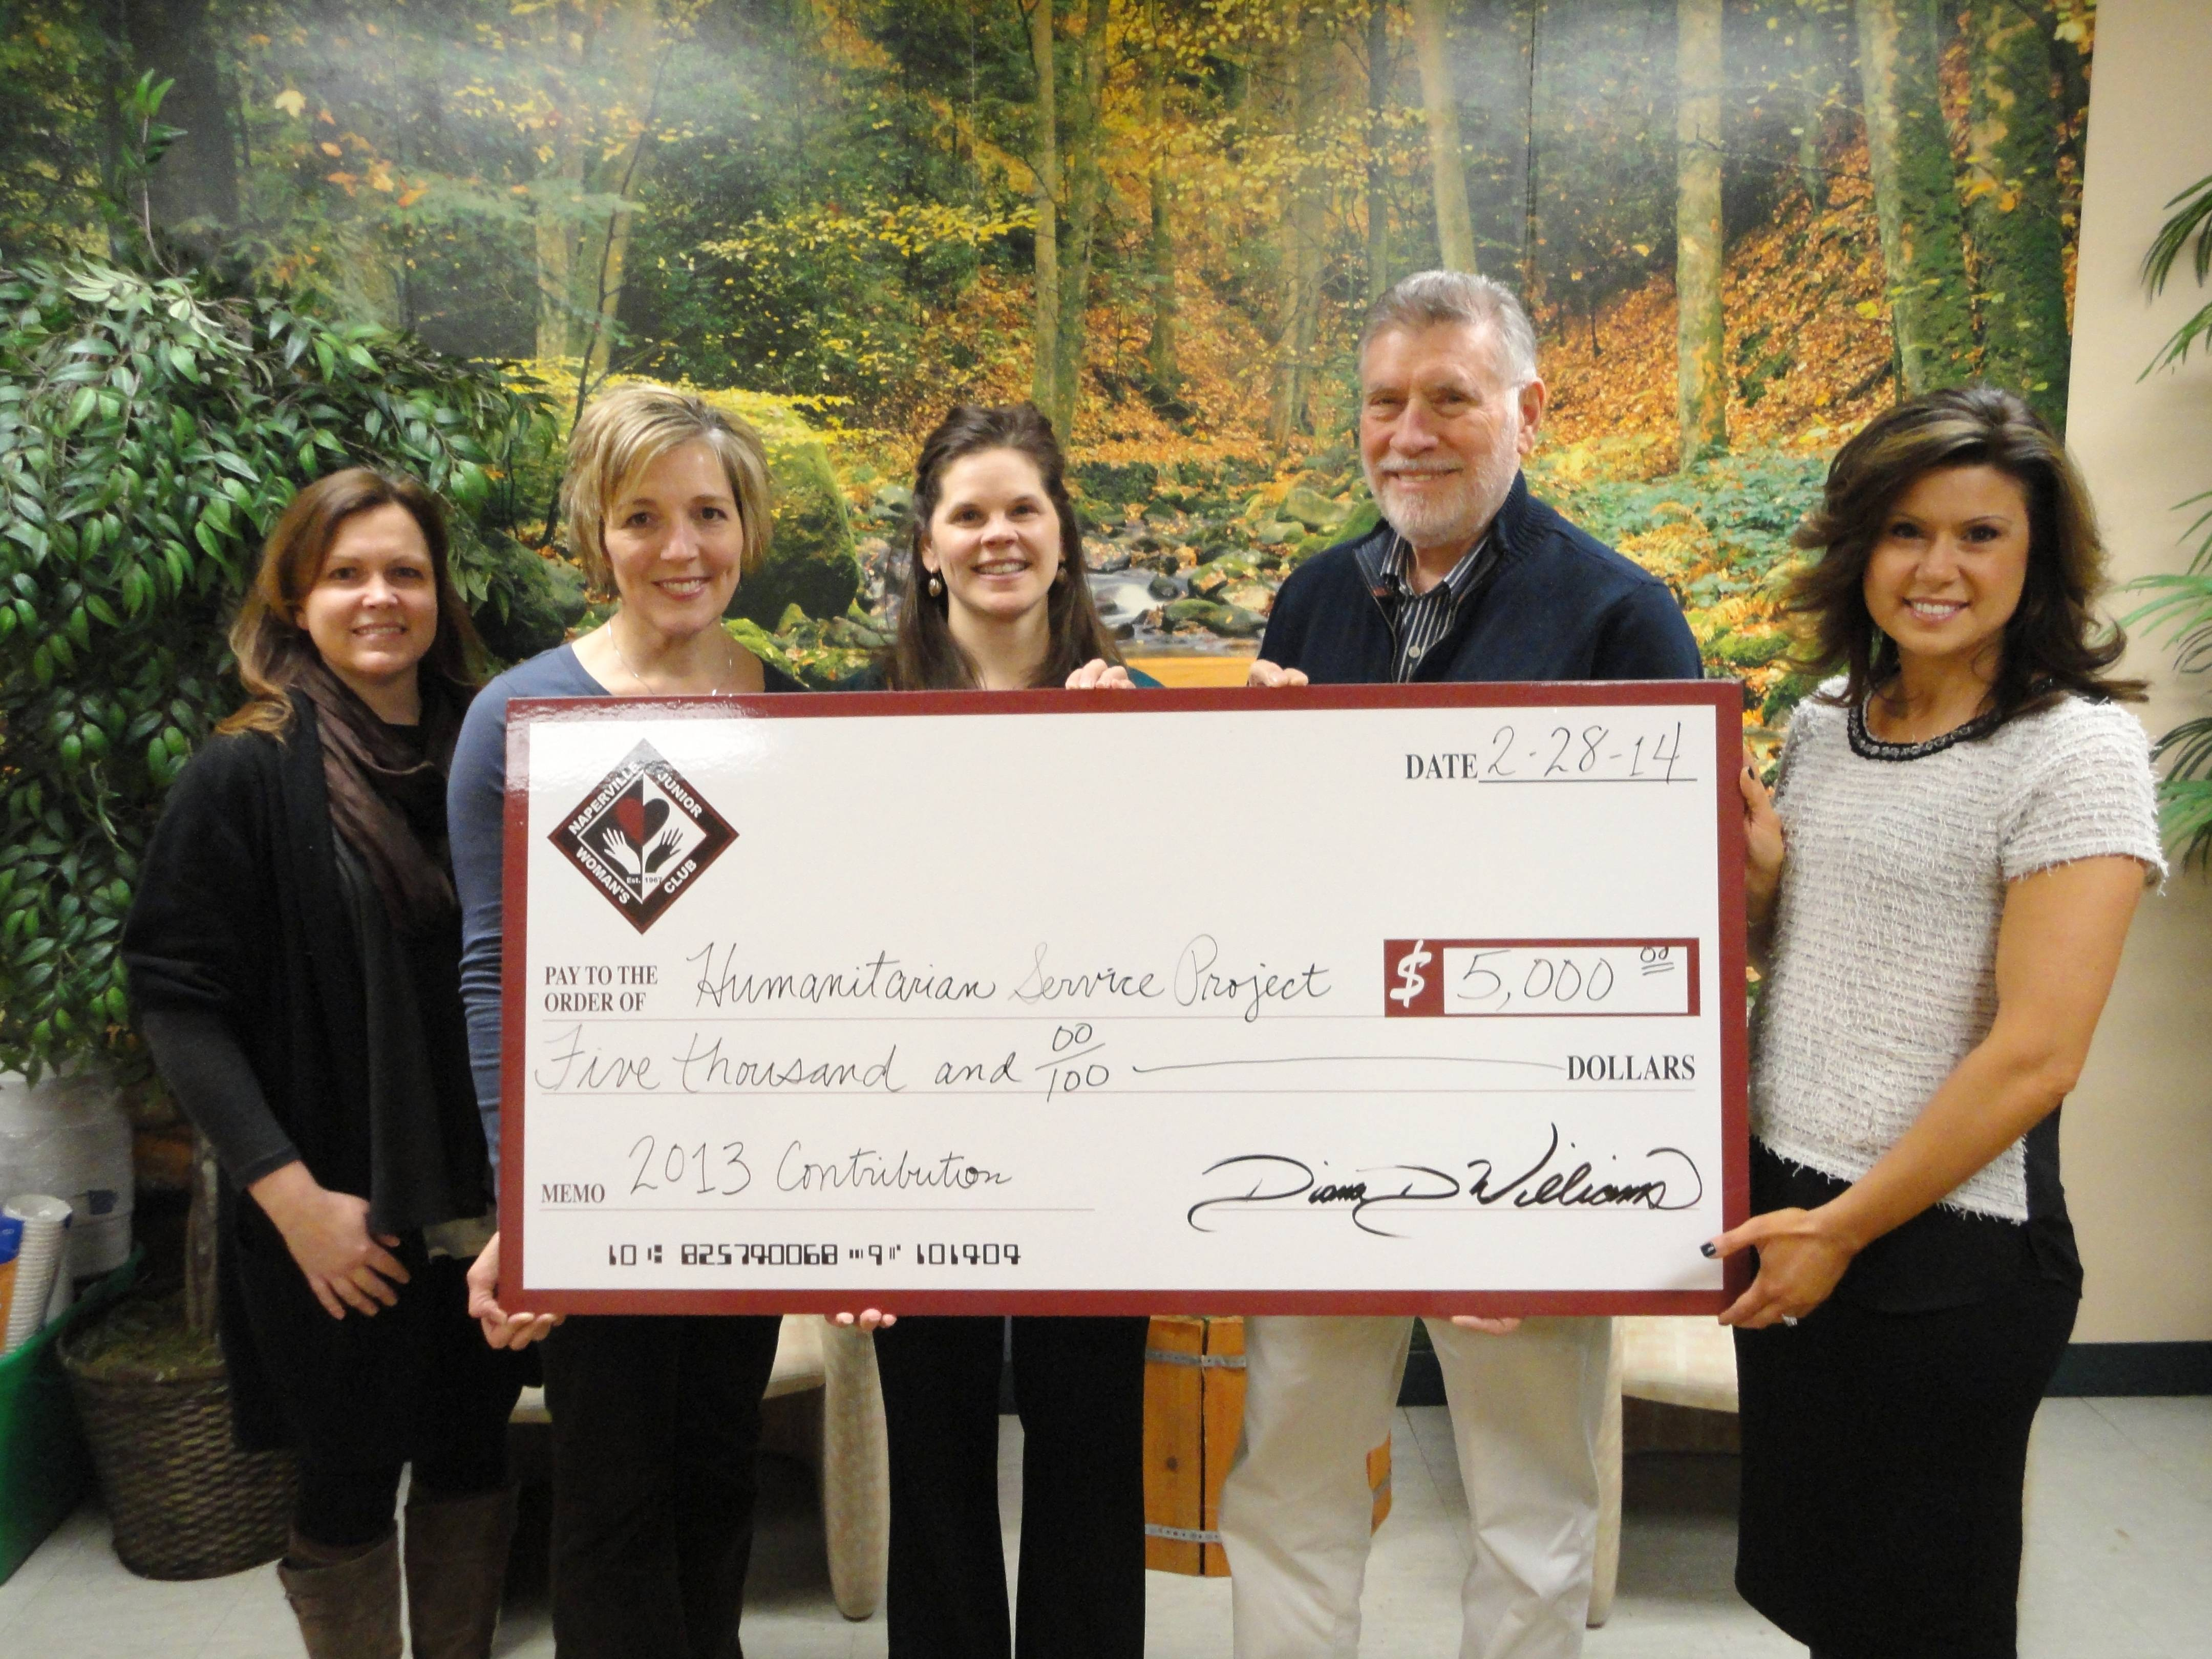 NJWC presenting the check to HSP (From left: Molly Capo, Gina Jones, Kristin Maxwell, Floyd Kettering, and Diana Williams.)Humanitarian Service Project